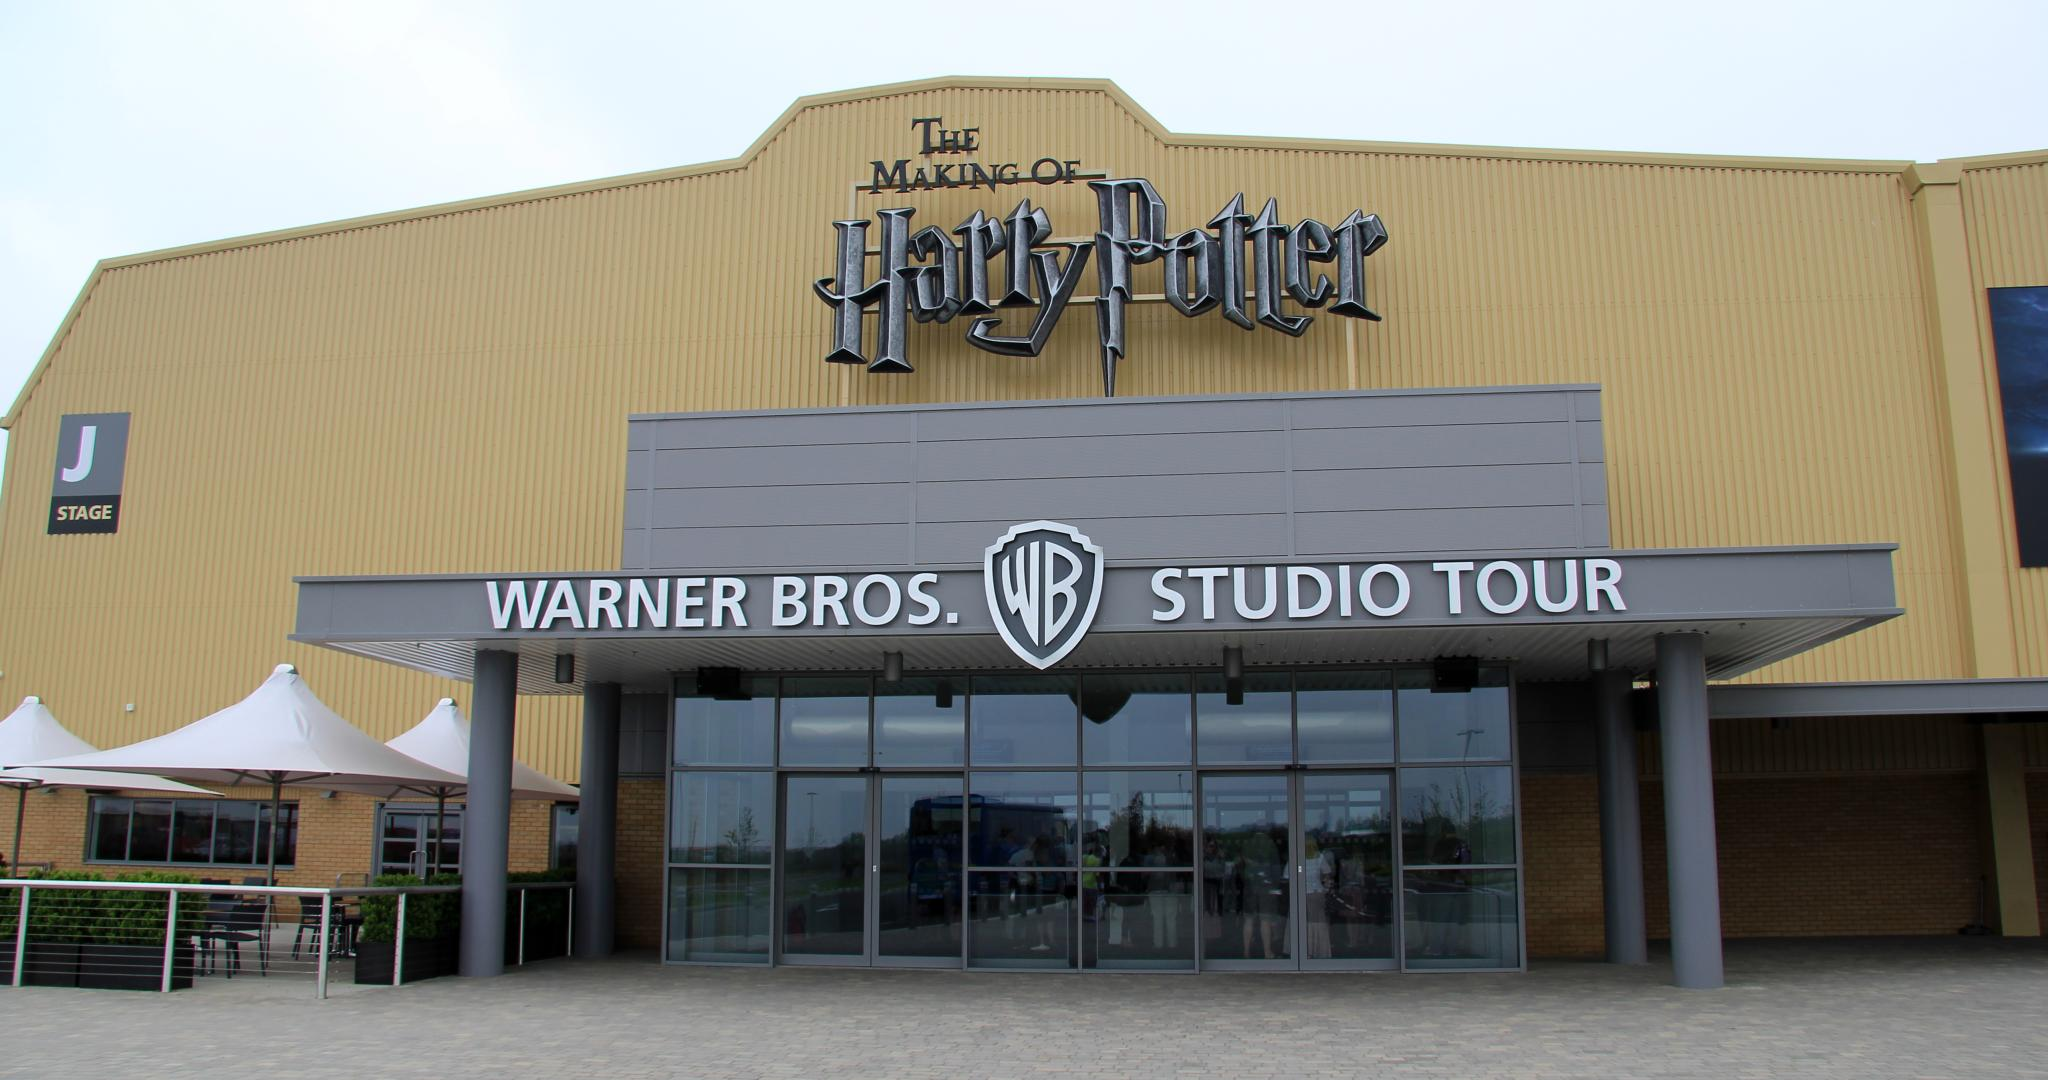 Location Décoration Harry Potter Warner Bros Studio Tour London The Making Of Harry Potter